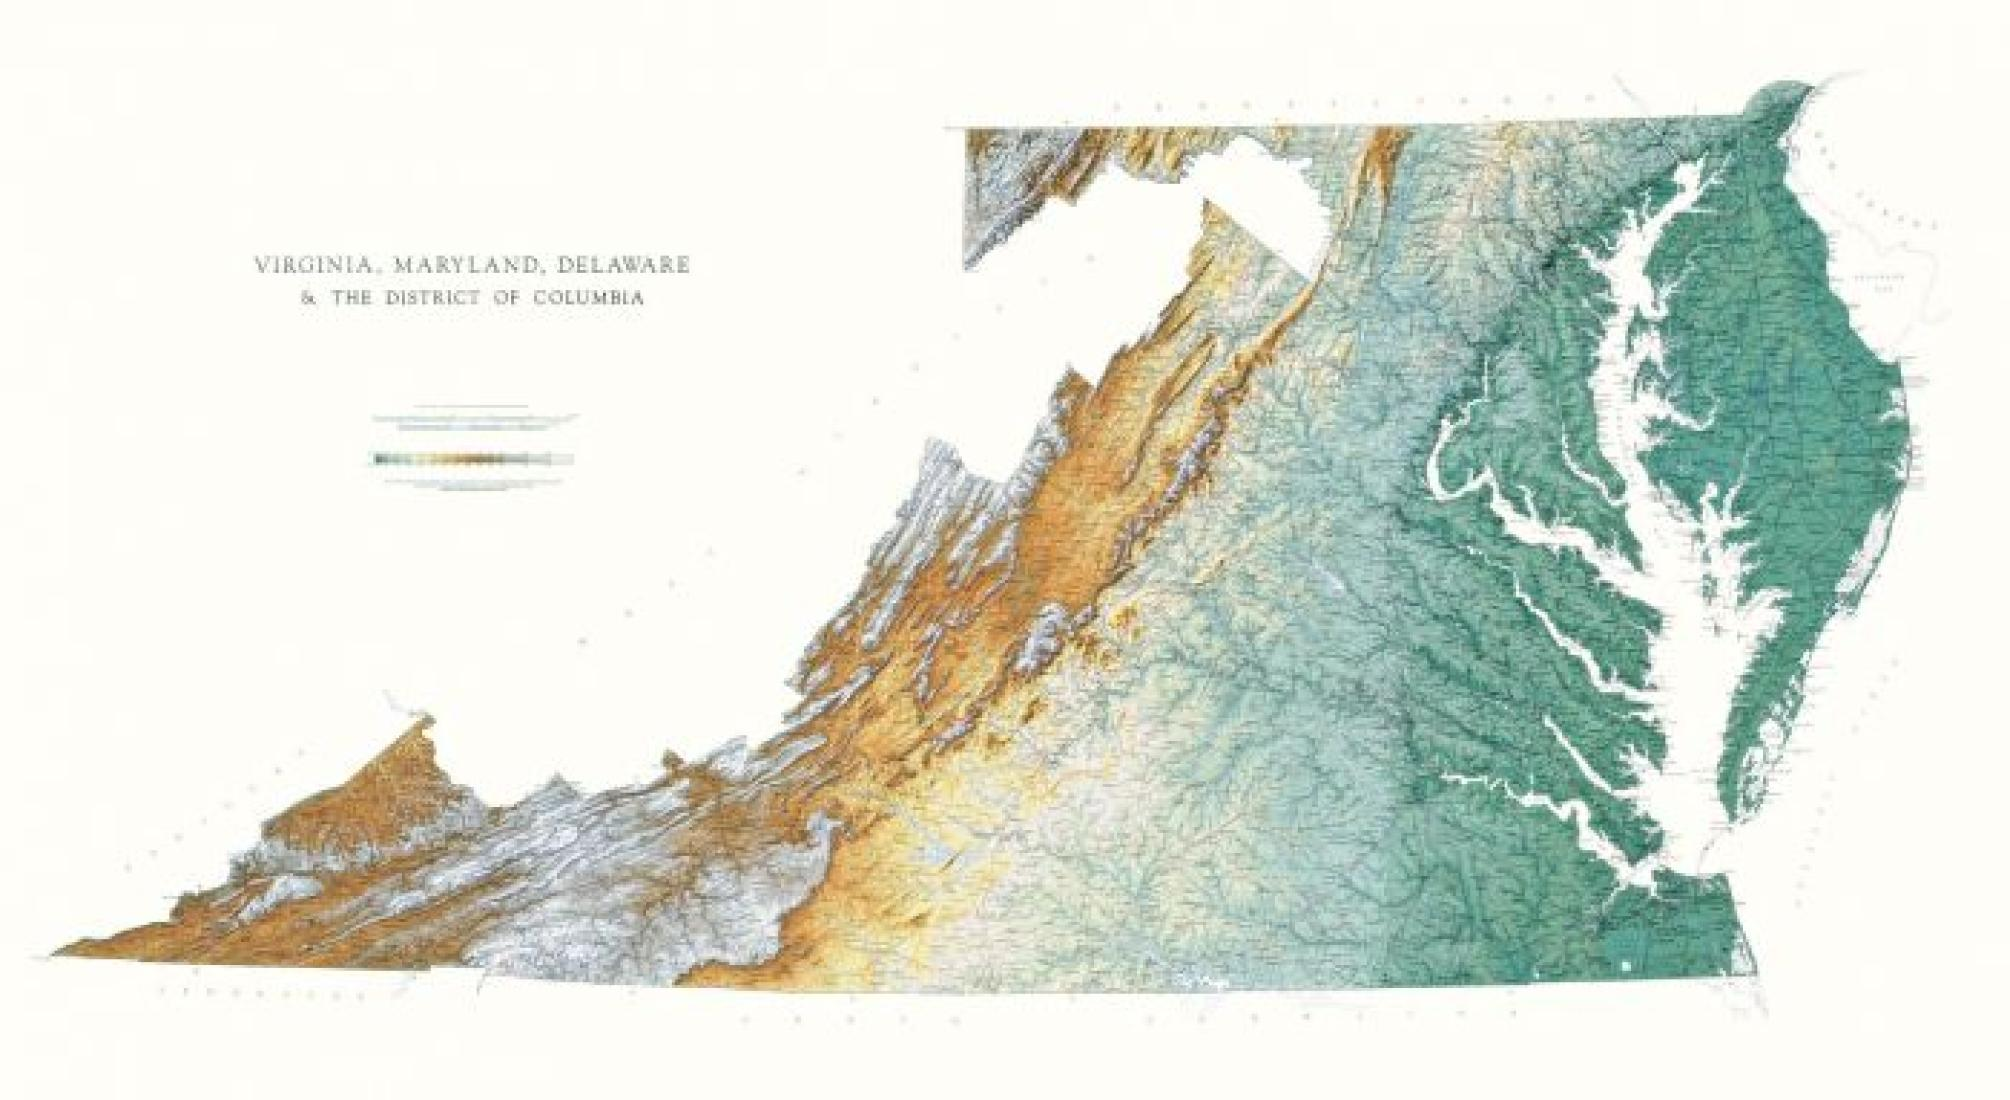 Delaware Physical Map on